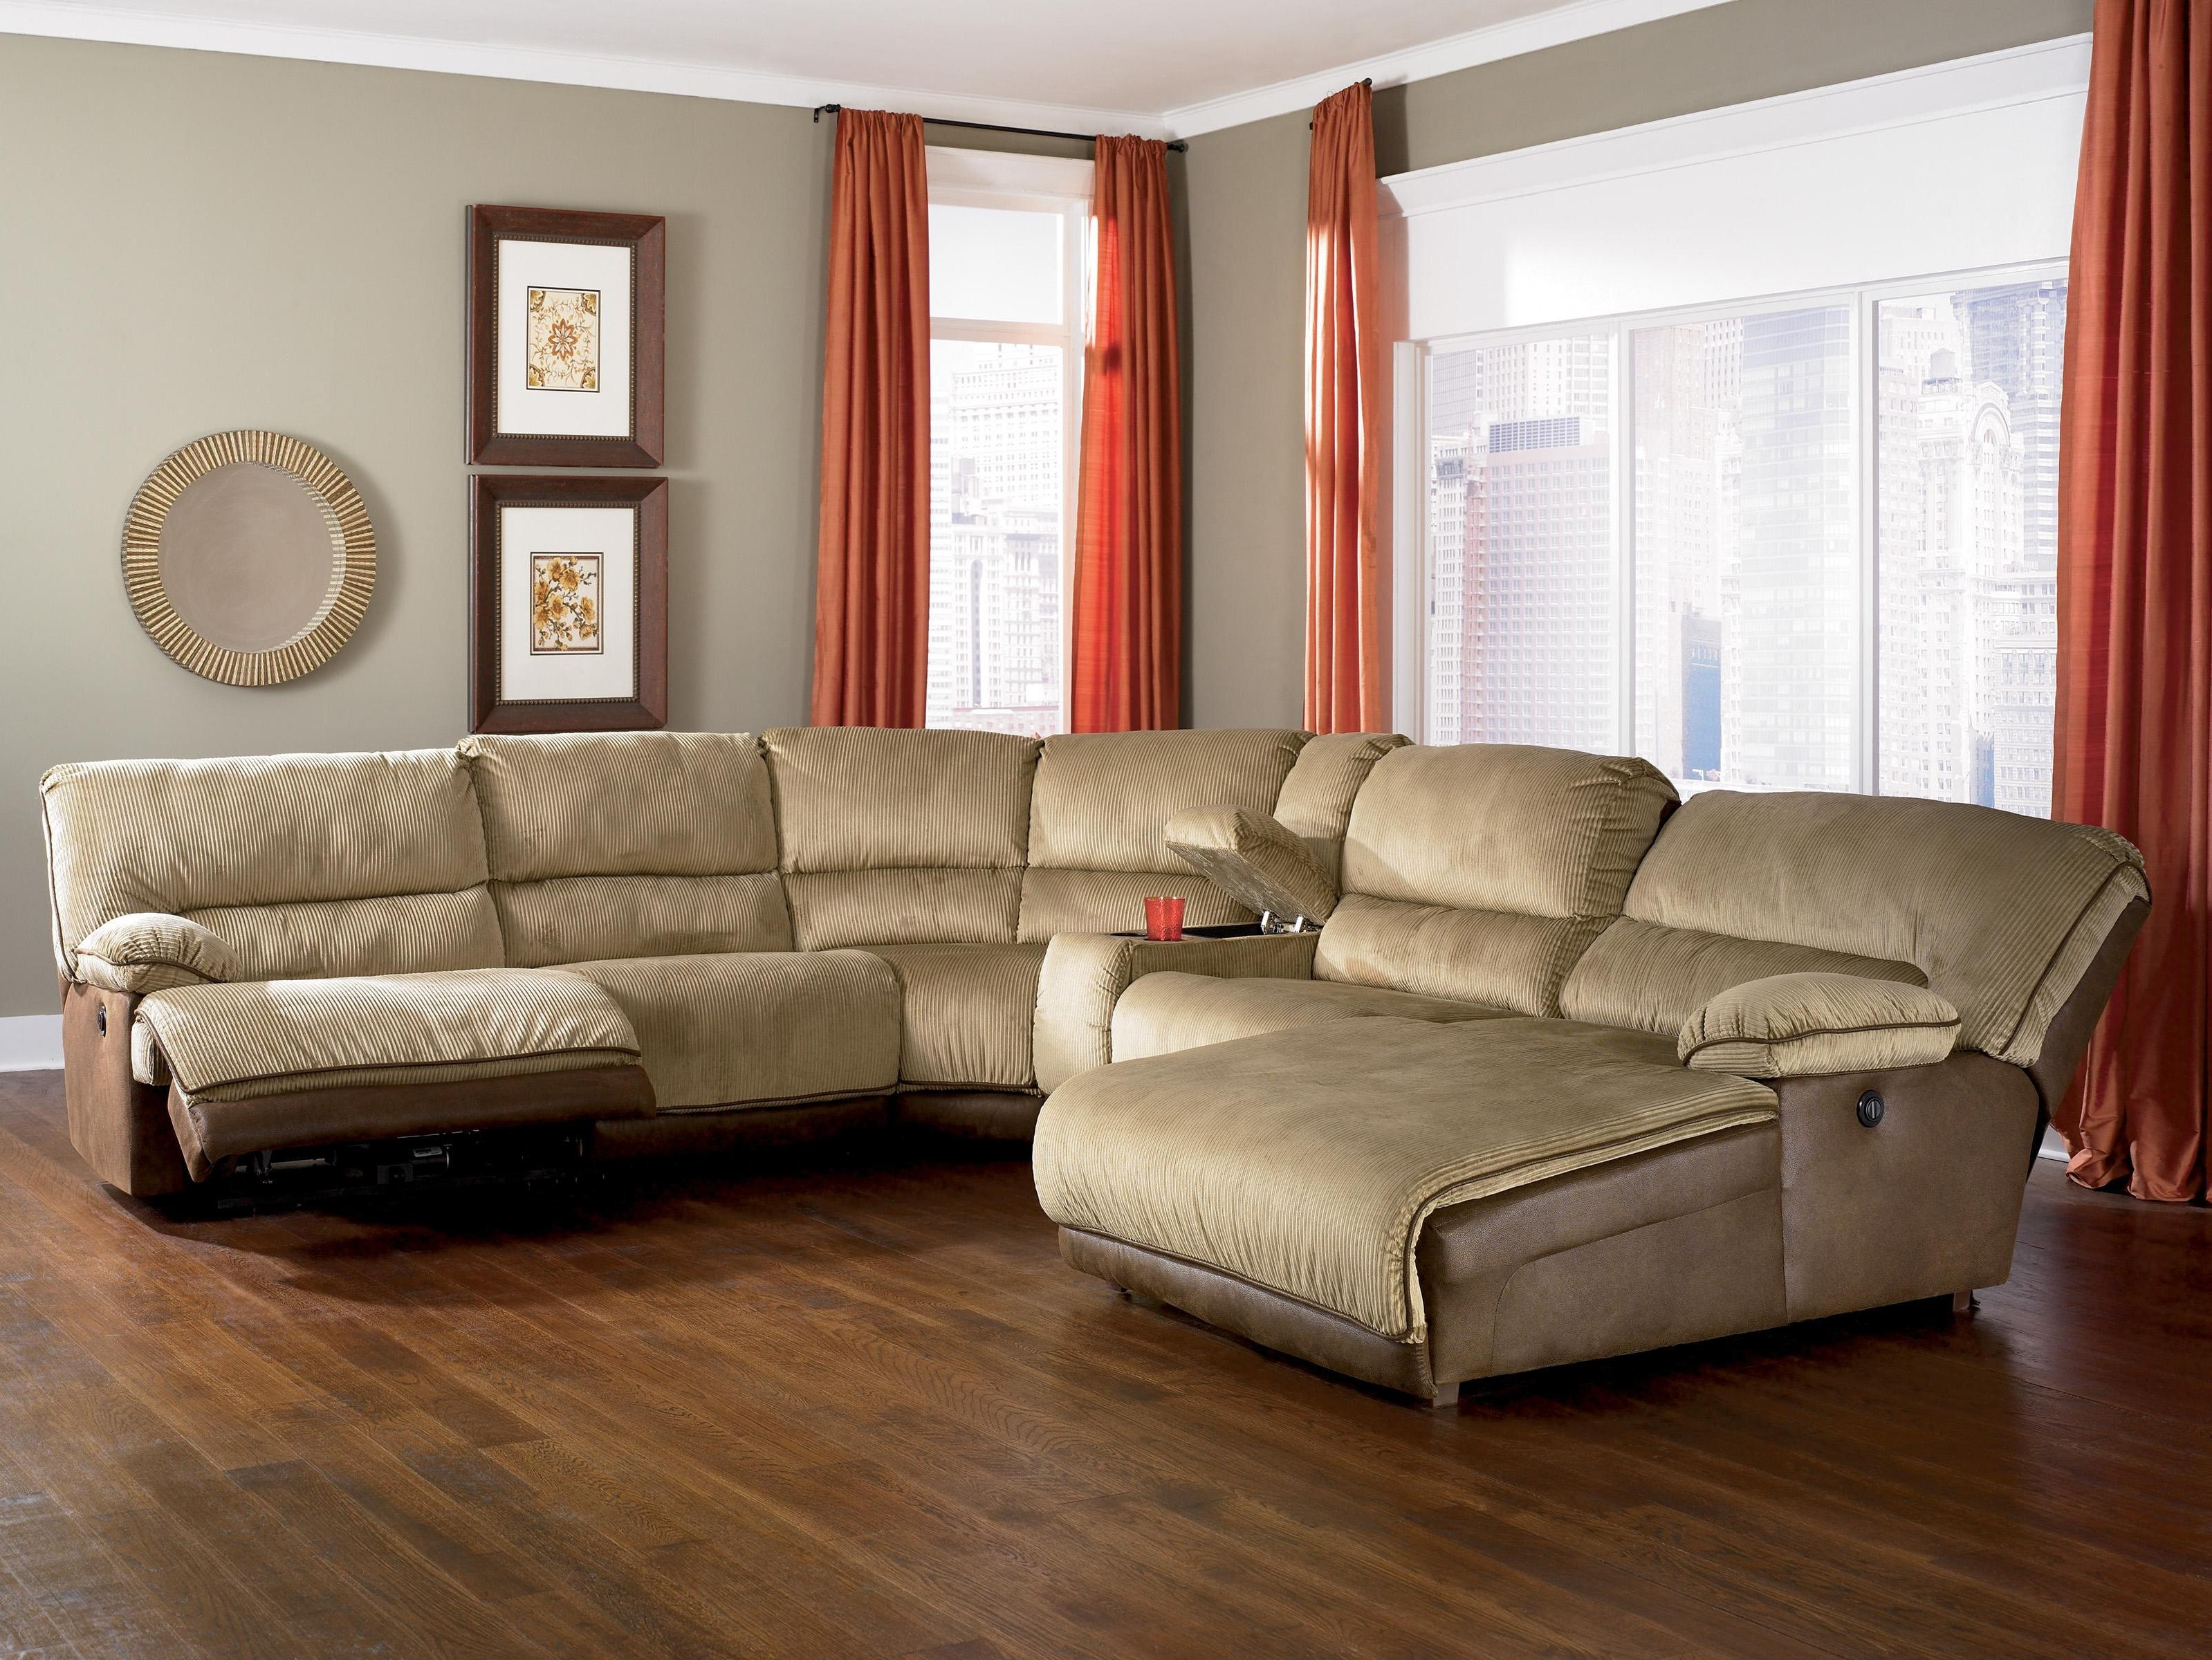 Widely Used Furniture : Sectional Sofa $500 Recliner With Lift Corner Couch Within Jamaica Sectional Sofas (View 18 of 20)